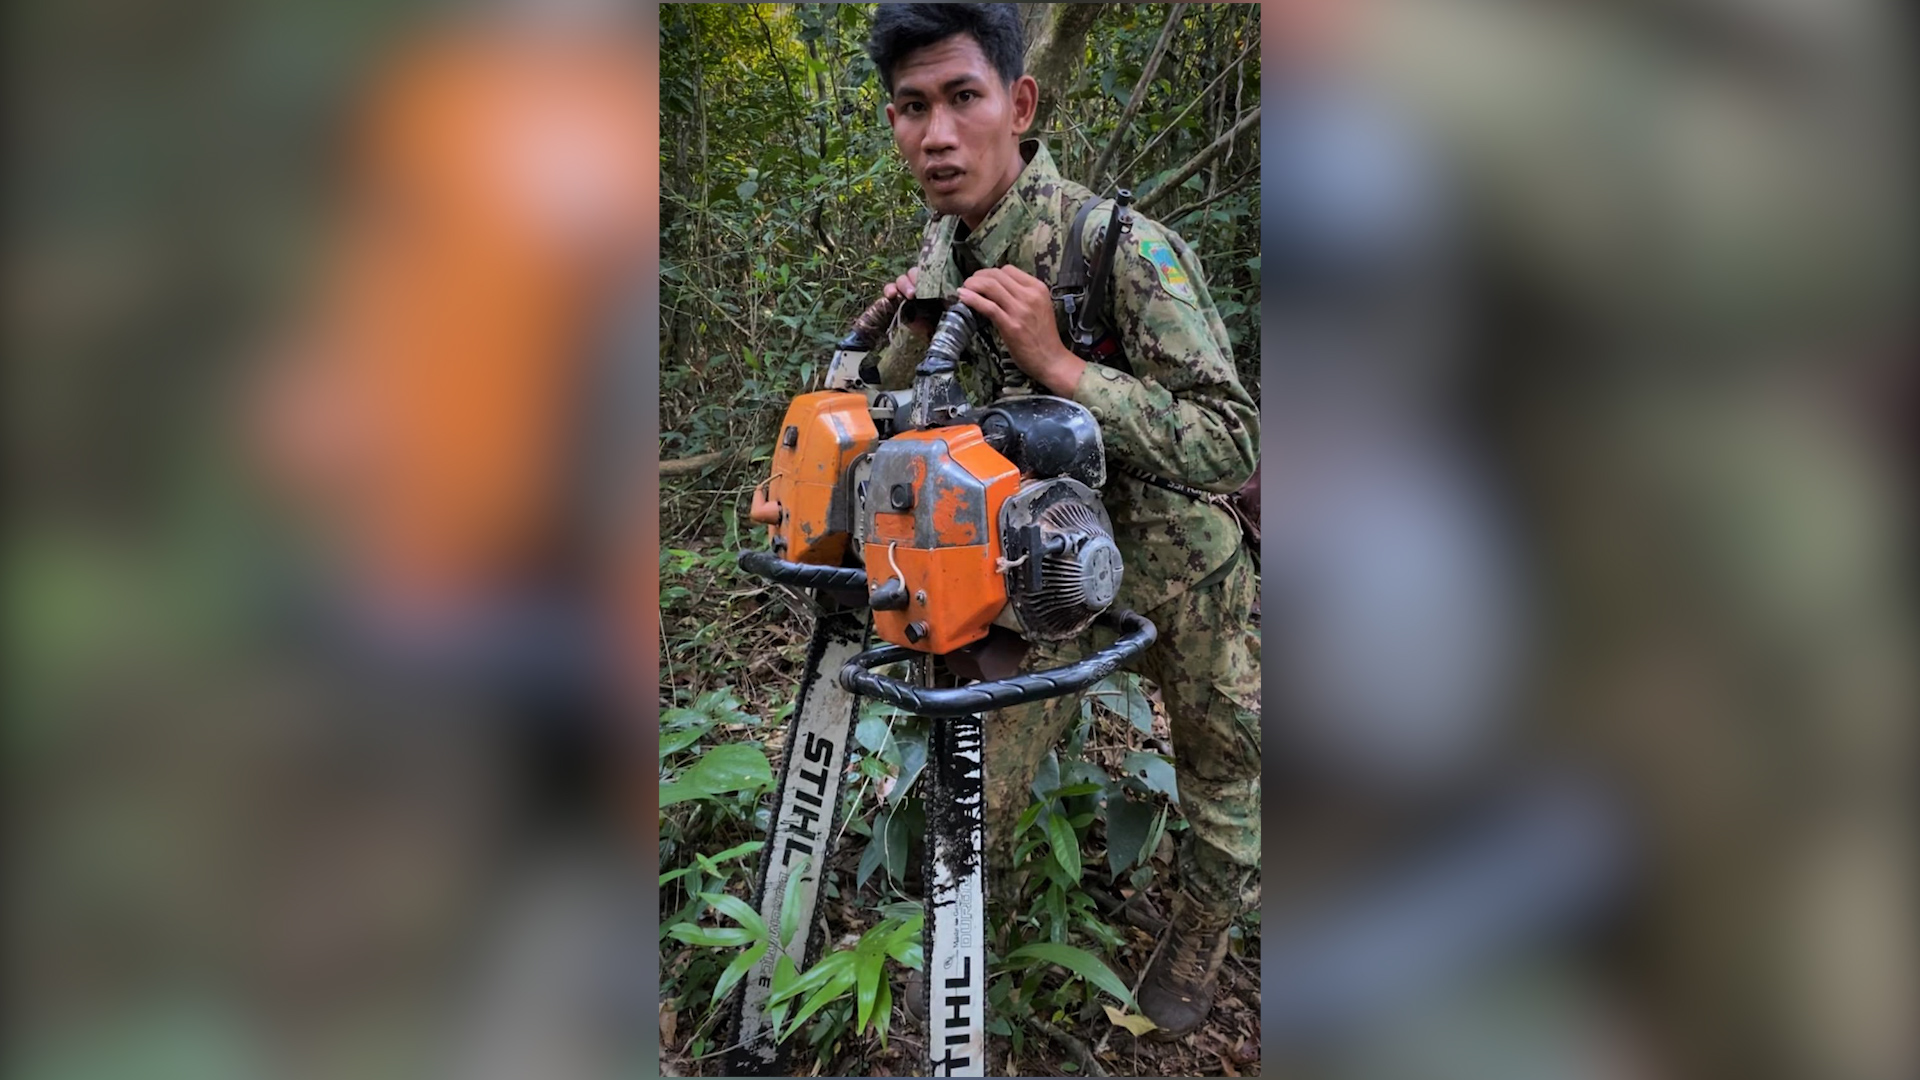 More than 1500 chainsaws are confiscated every year by Wildlife Alliance rangers